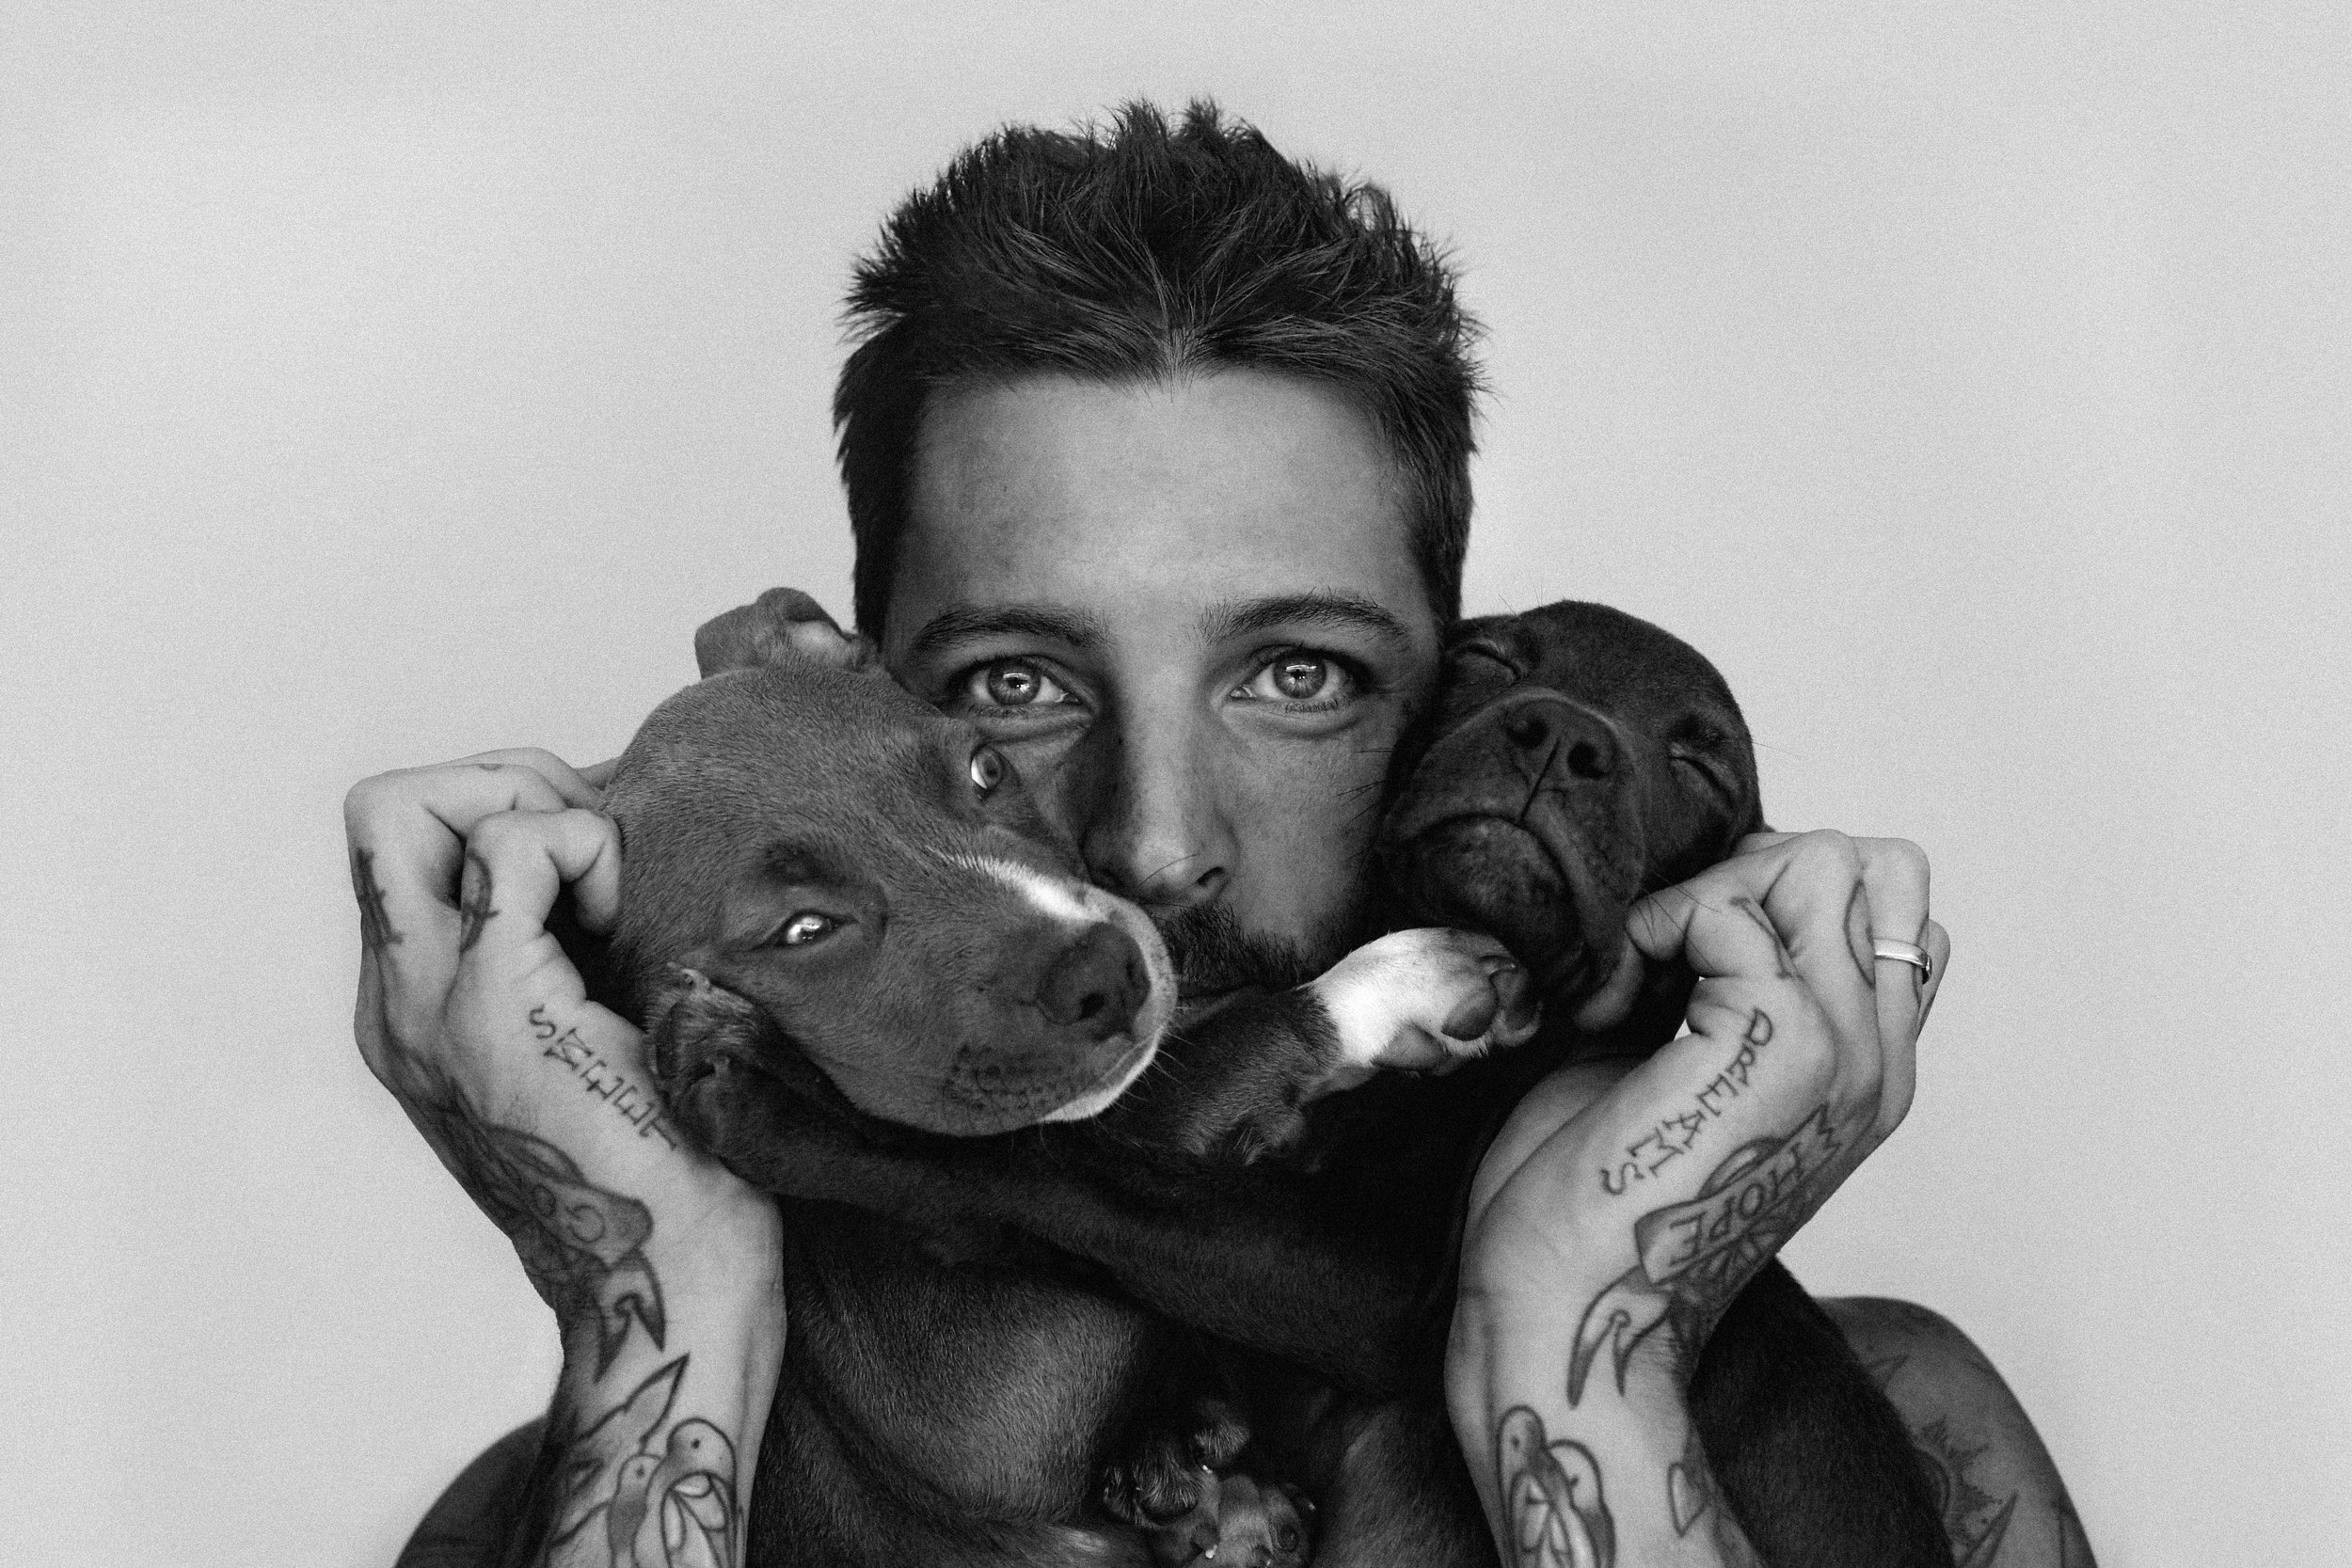 SHANE & THE PUPPIES - Male Model @shaneburnell with Pitt Bull Puppies Photo Shoot Story shot in Bali by Alyssa Risley - IG @alyssarisley (Black and White)